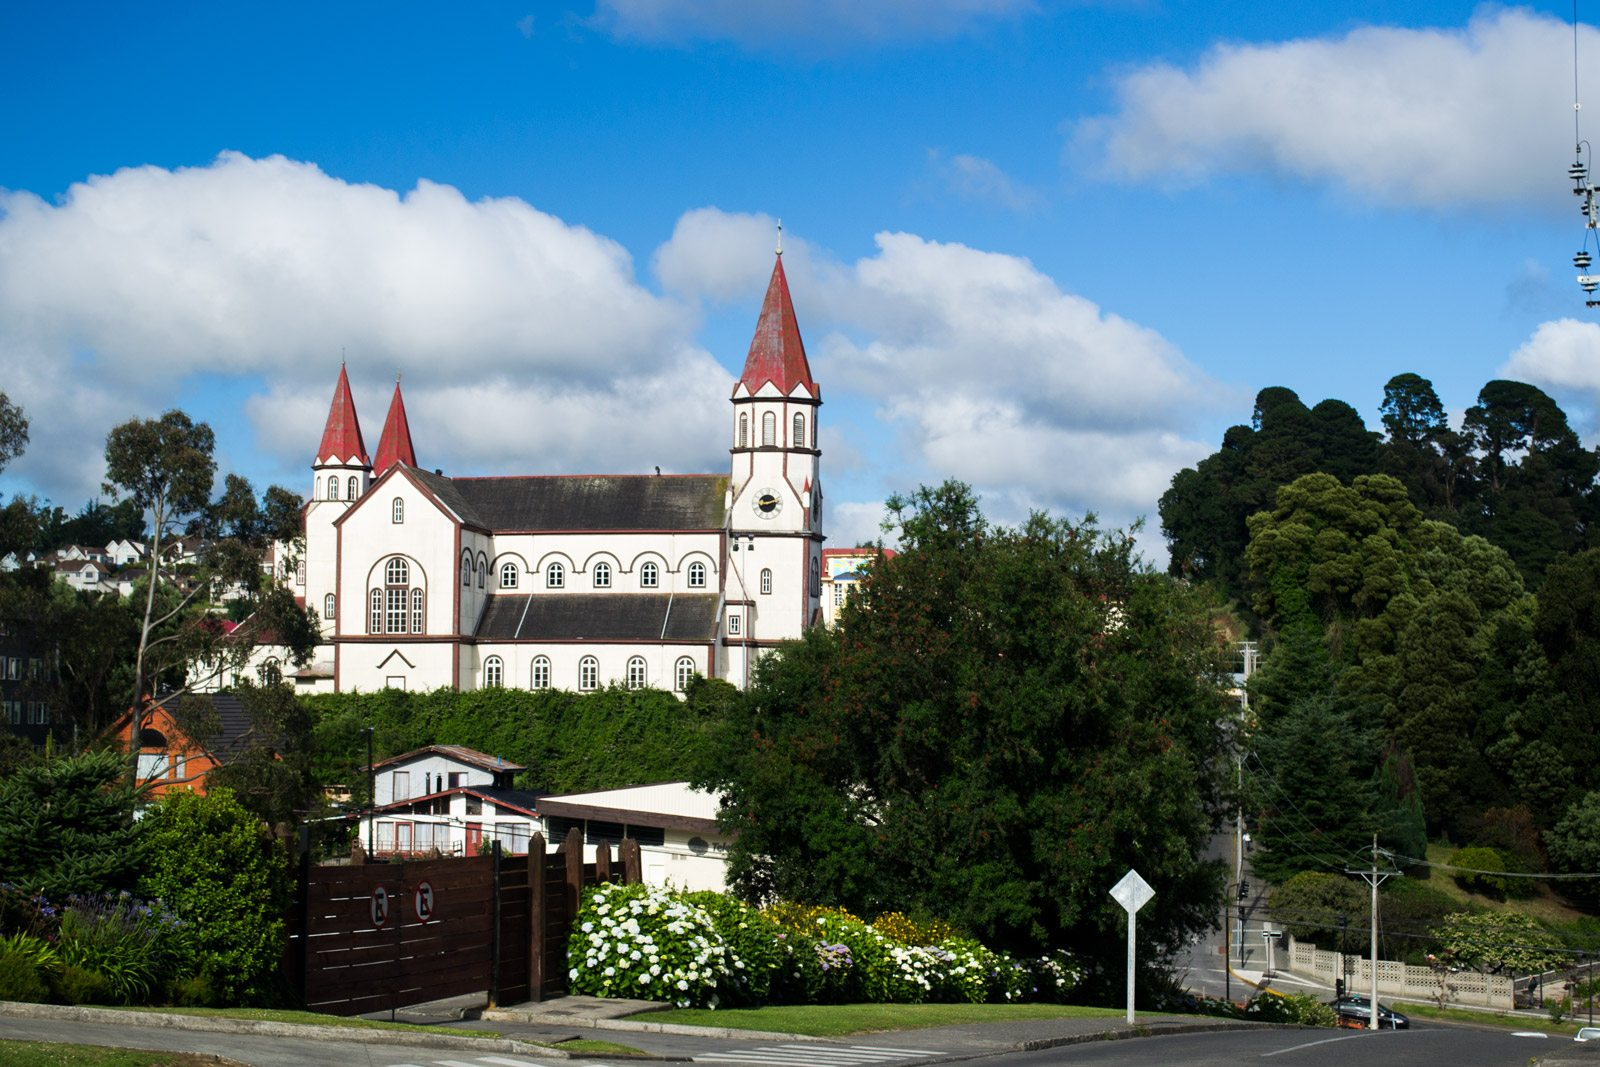 puerto varas buddhist singles Puerto montt trip planner  visit a single location or make it a multi  medium 6 days in puerto varas & puerto montt by a user from united states.